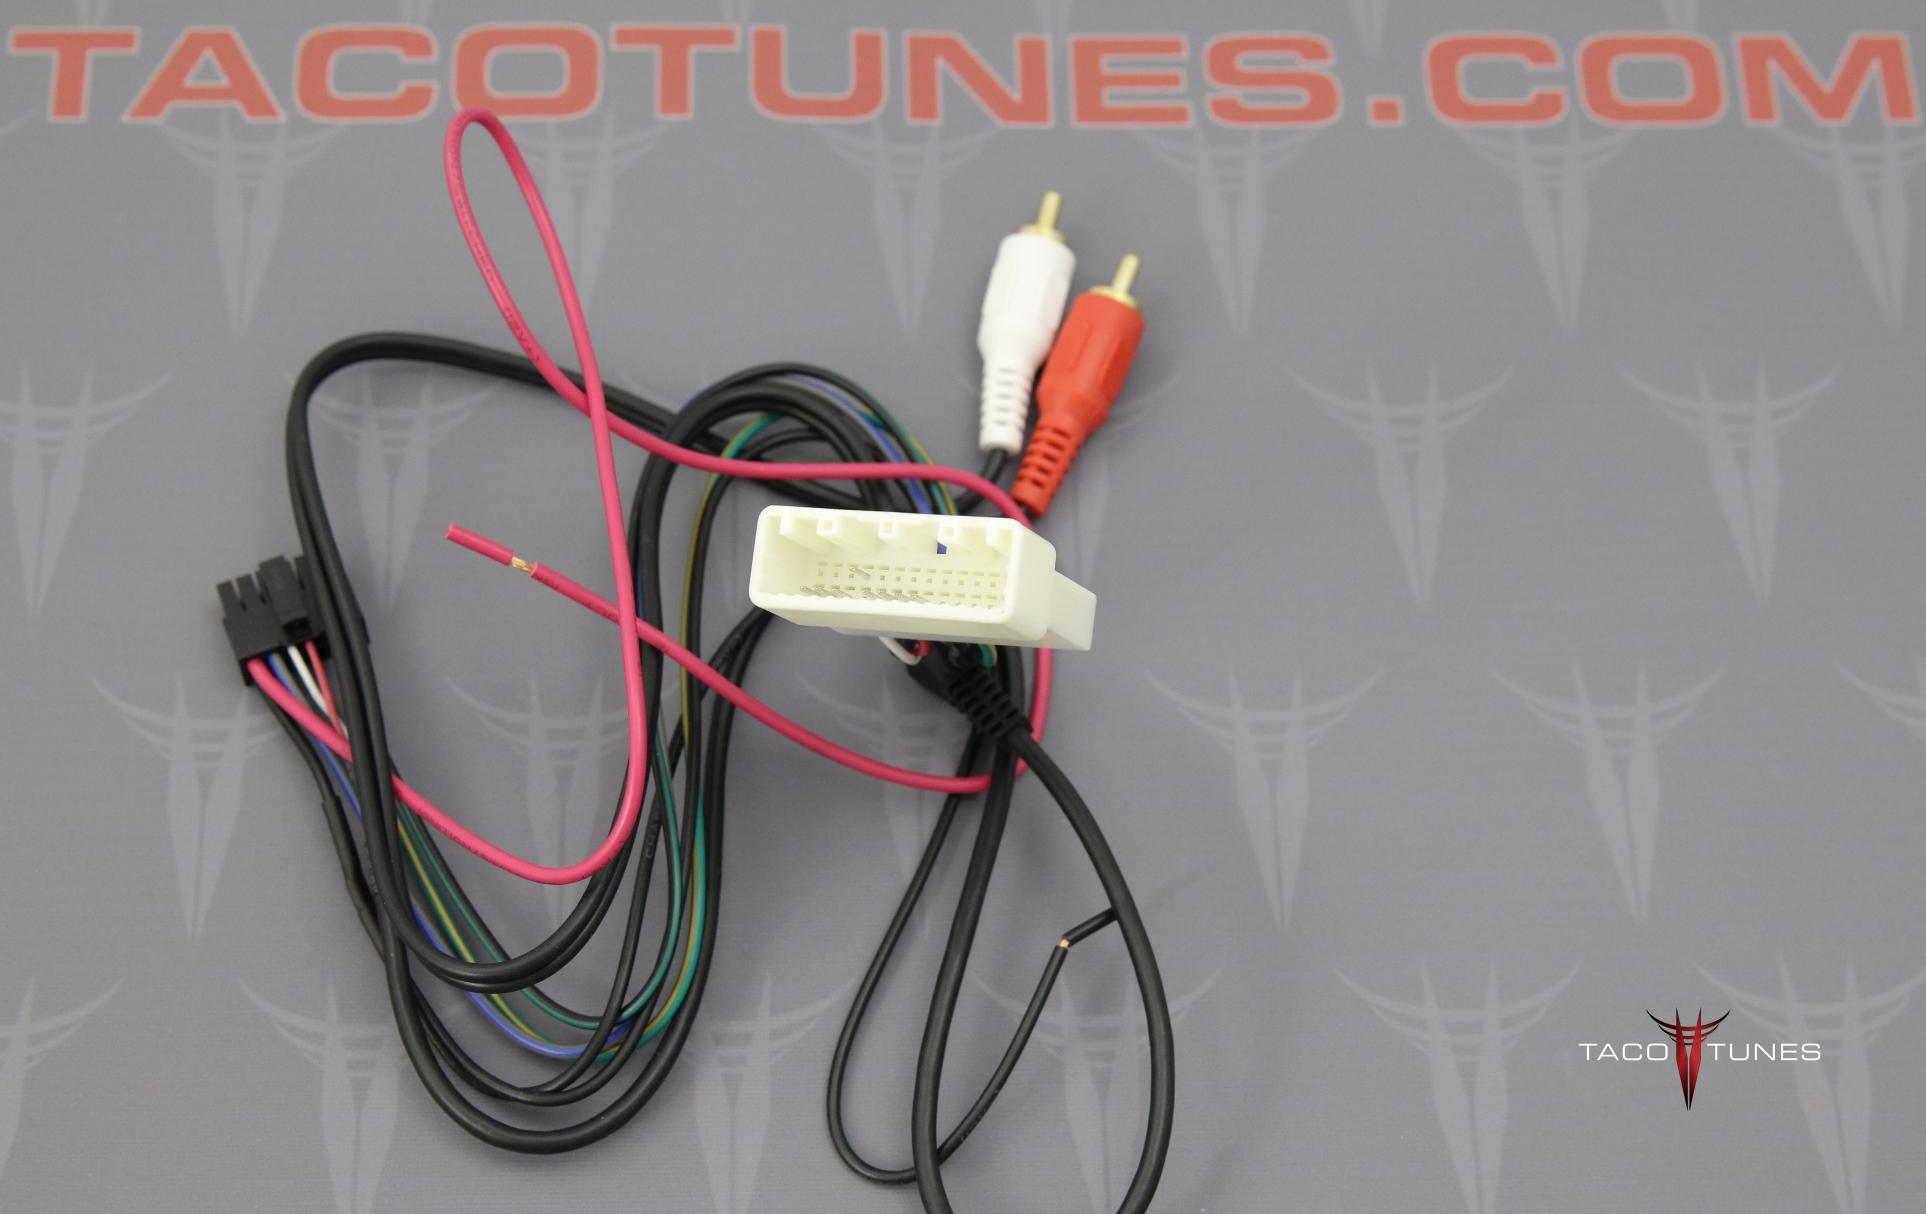 2012 Toyota Tacoma Steering Wheel Wire Harness Adapter Wiring Control Swc002